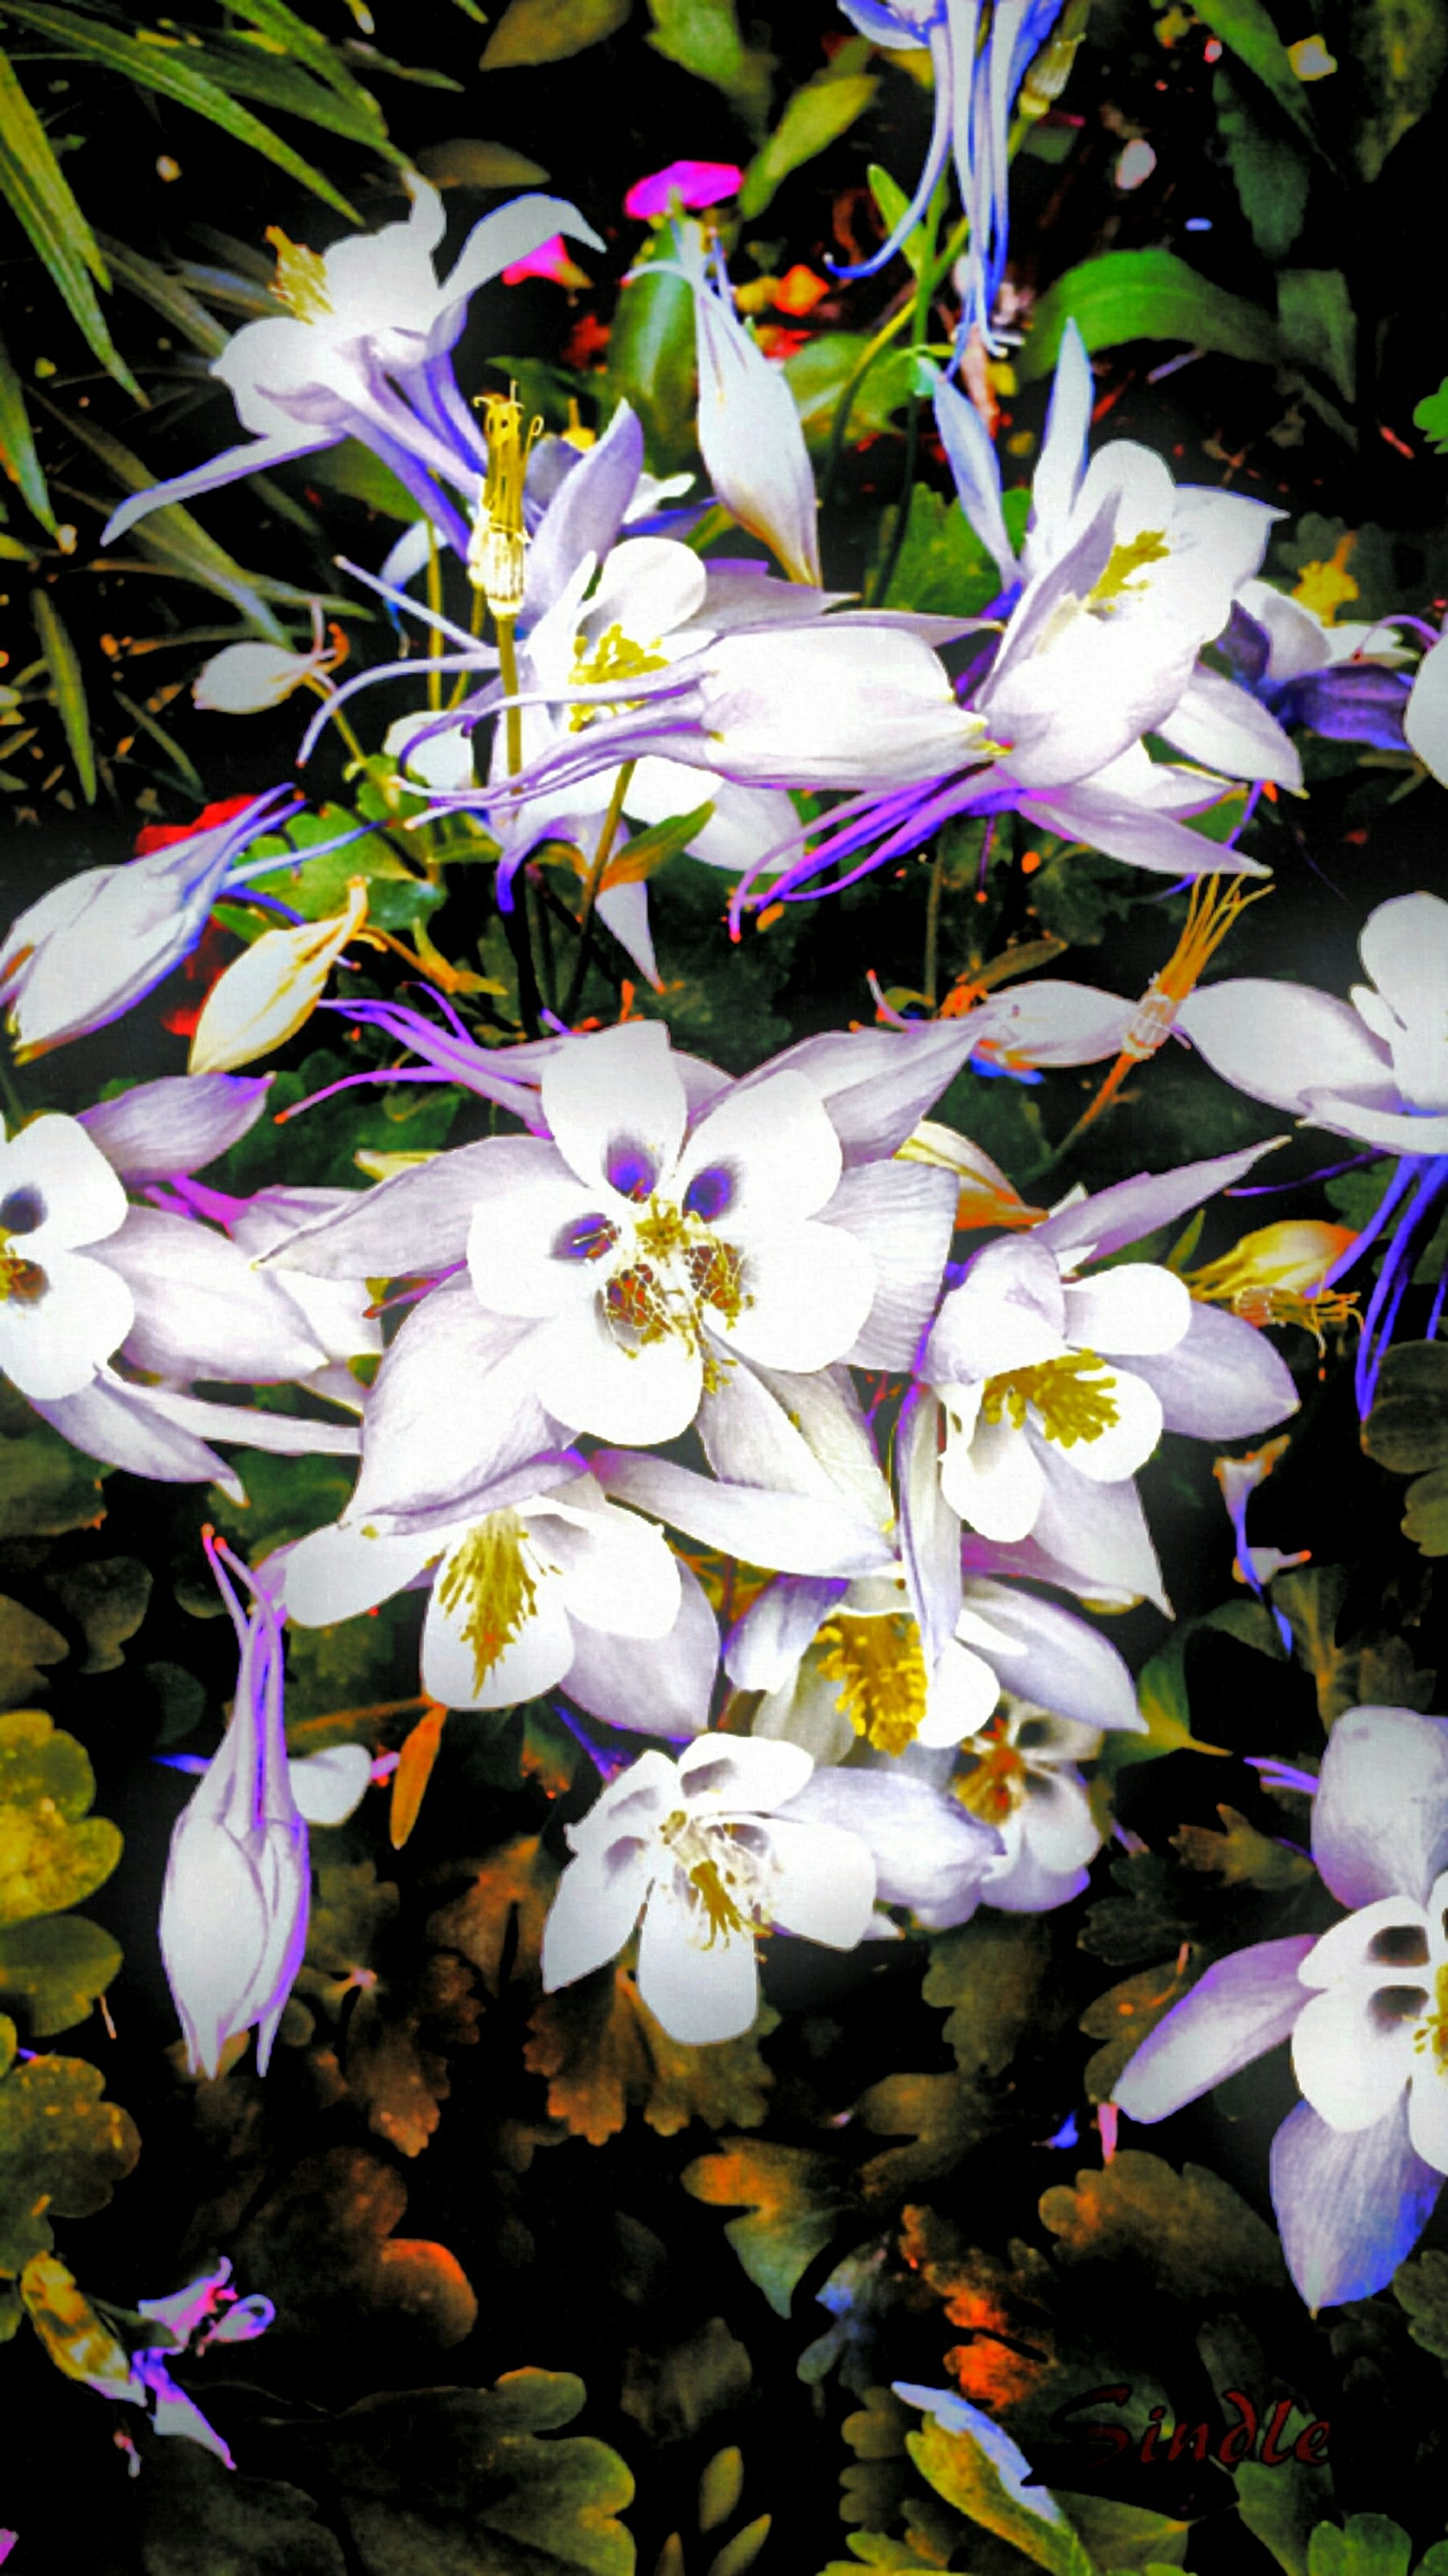 flower, petal, freshness, fragility, growth, purple, beauty in nature, flower head, blooming, nature, plant, leaf, blue, in bloom, close-up, high angle view, blossom, white color, park - man made space, outdoors